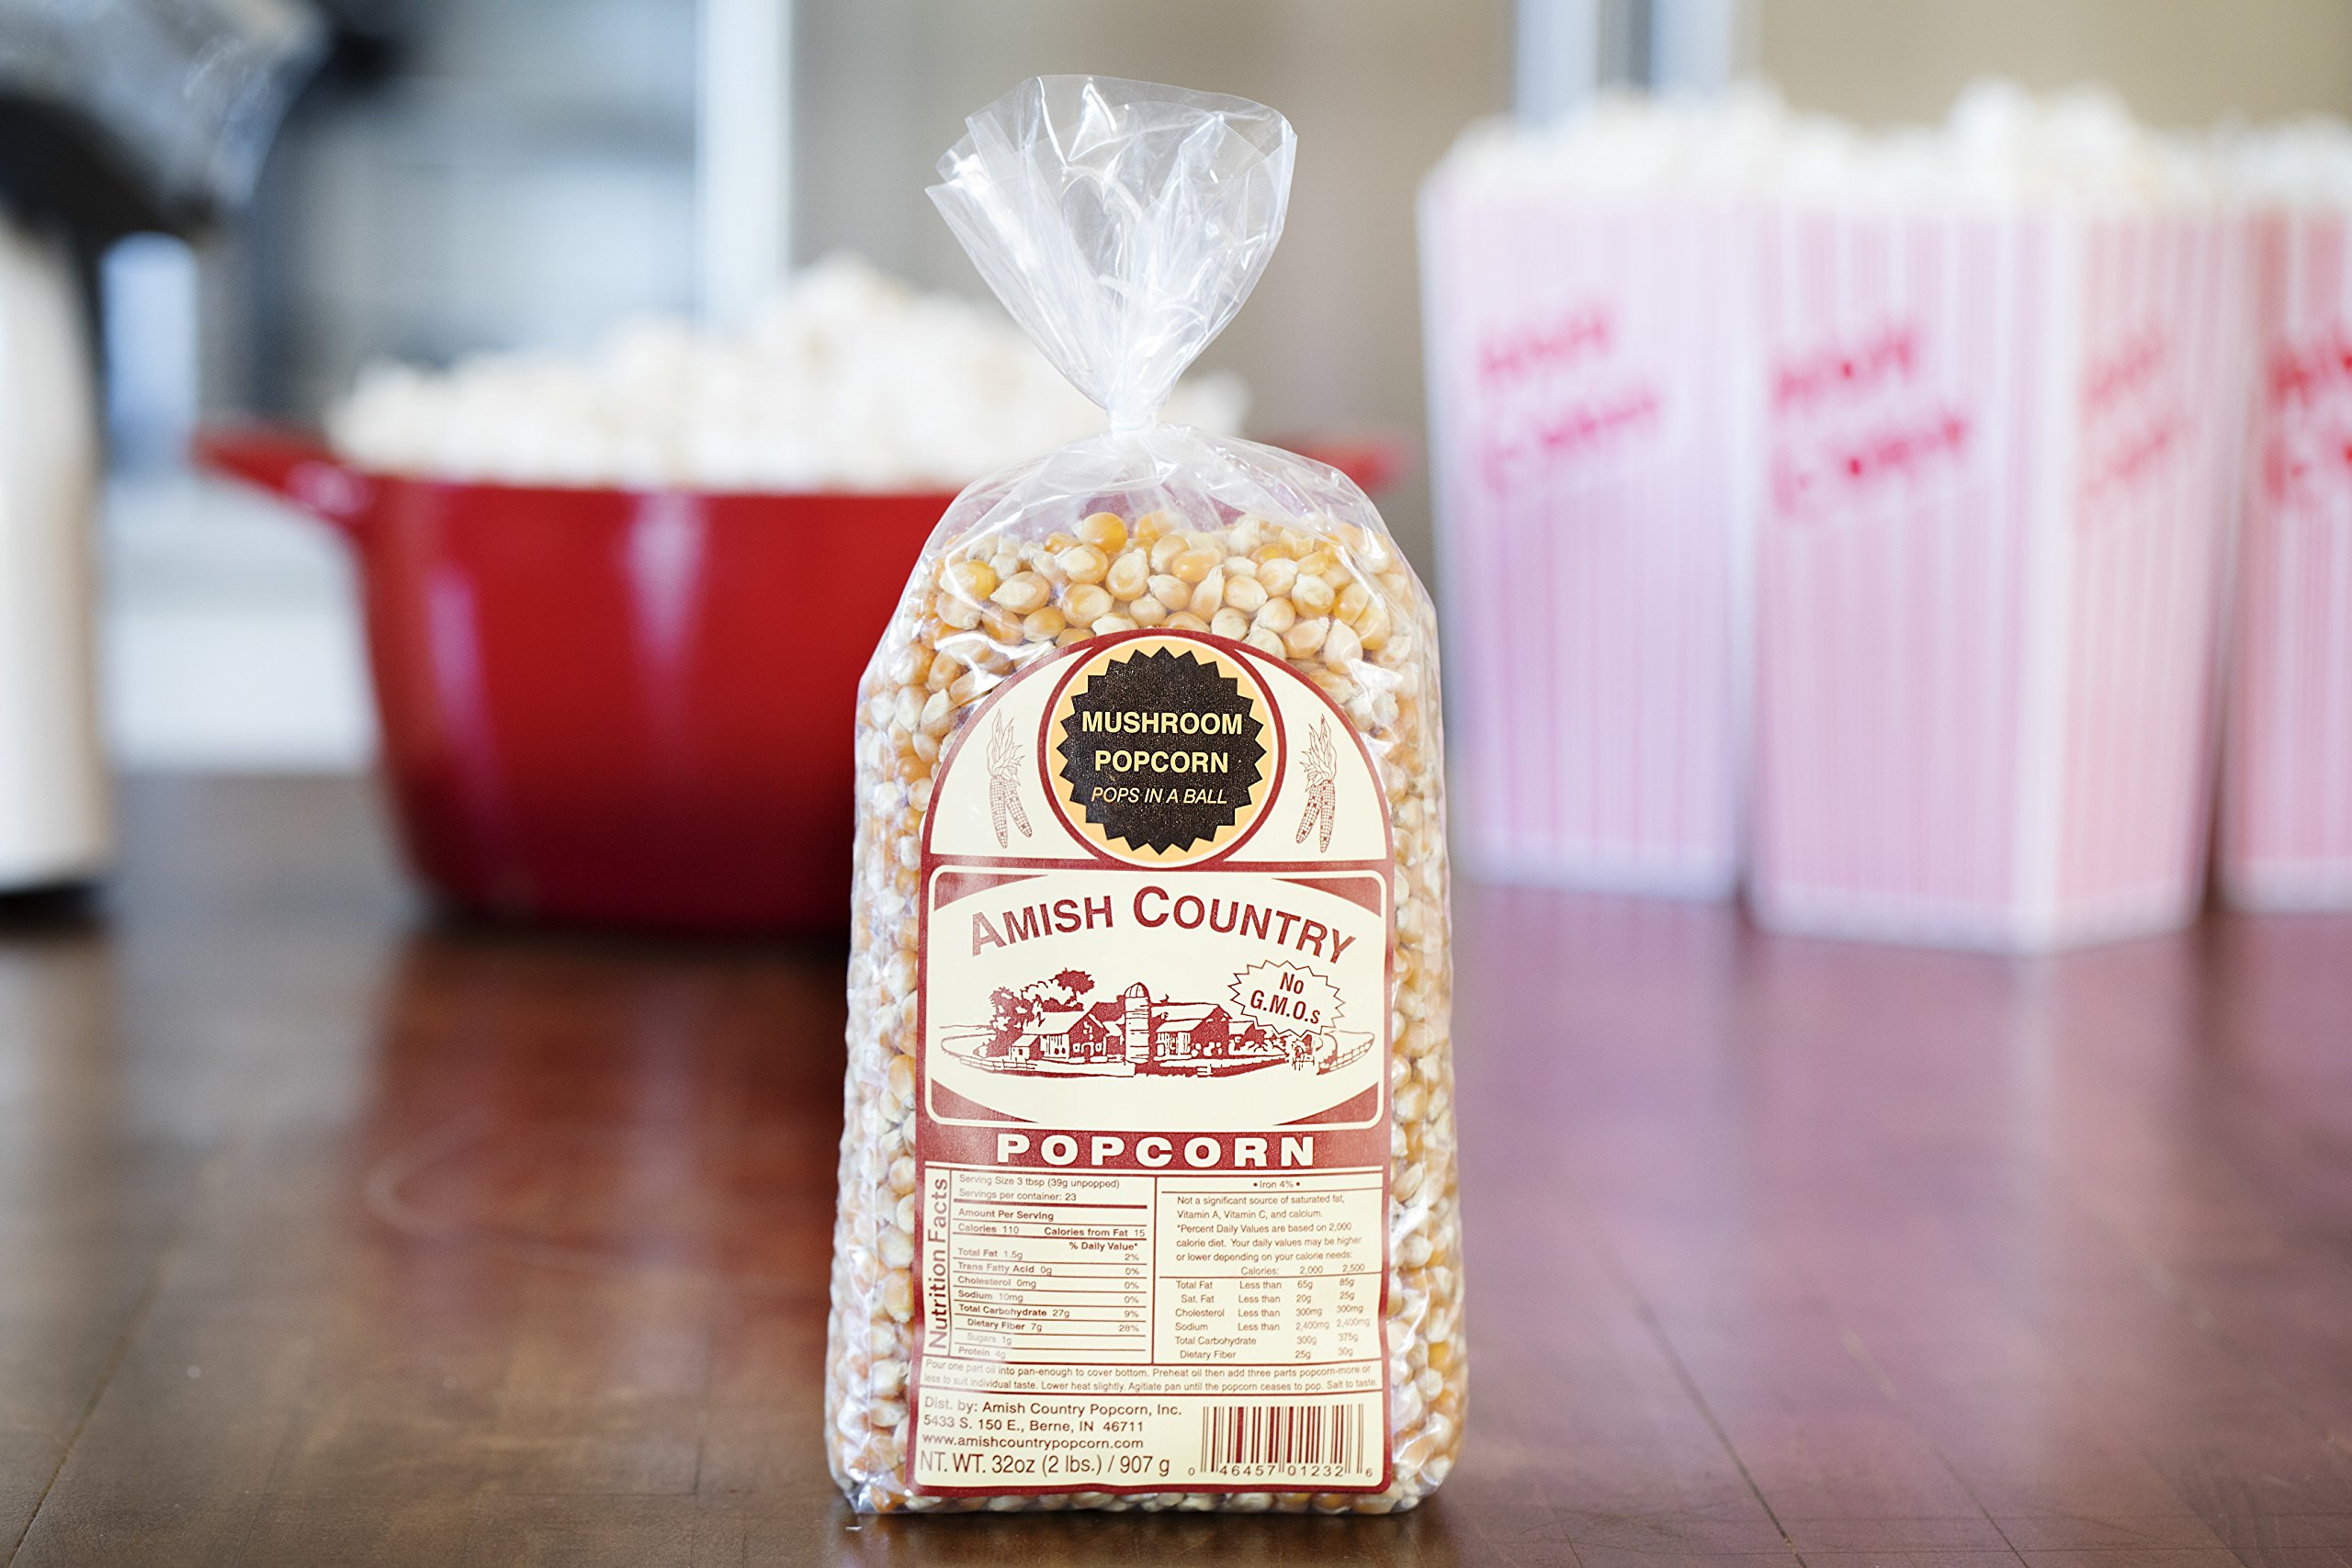 Amish Country Popcorn - Mushroom Popcorn (2 Pound Bag) With Recipe Guide - Old Fashioned, Non GMO, Gluten Free, Microwaveable, Stovetop and Air Popper Friendly by Amish Country Popcorn (Image #3)